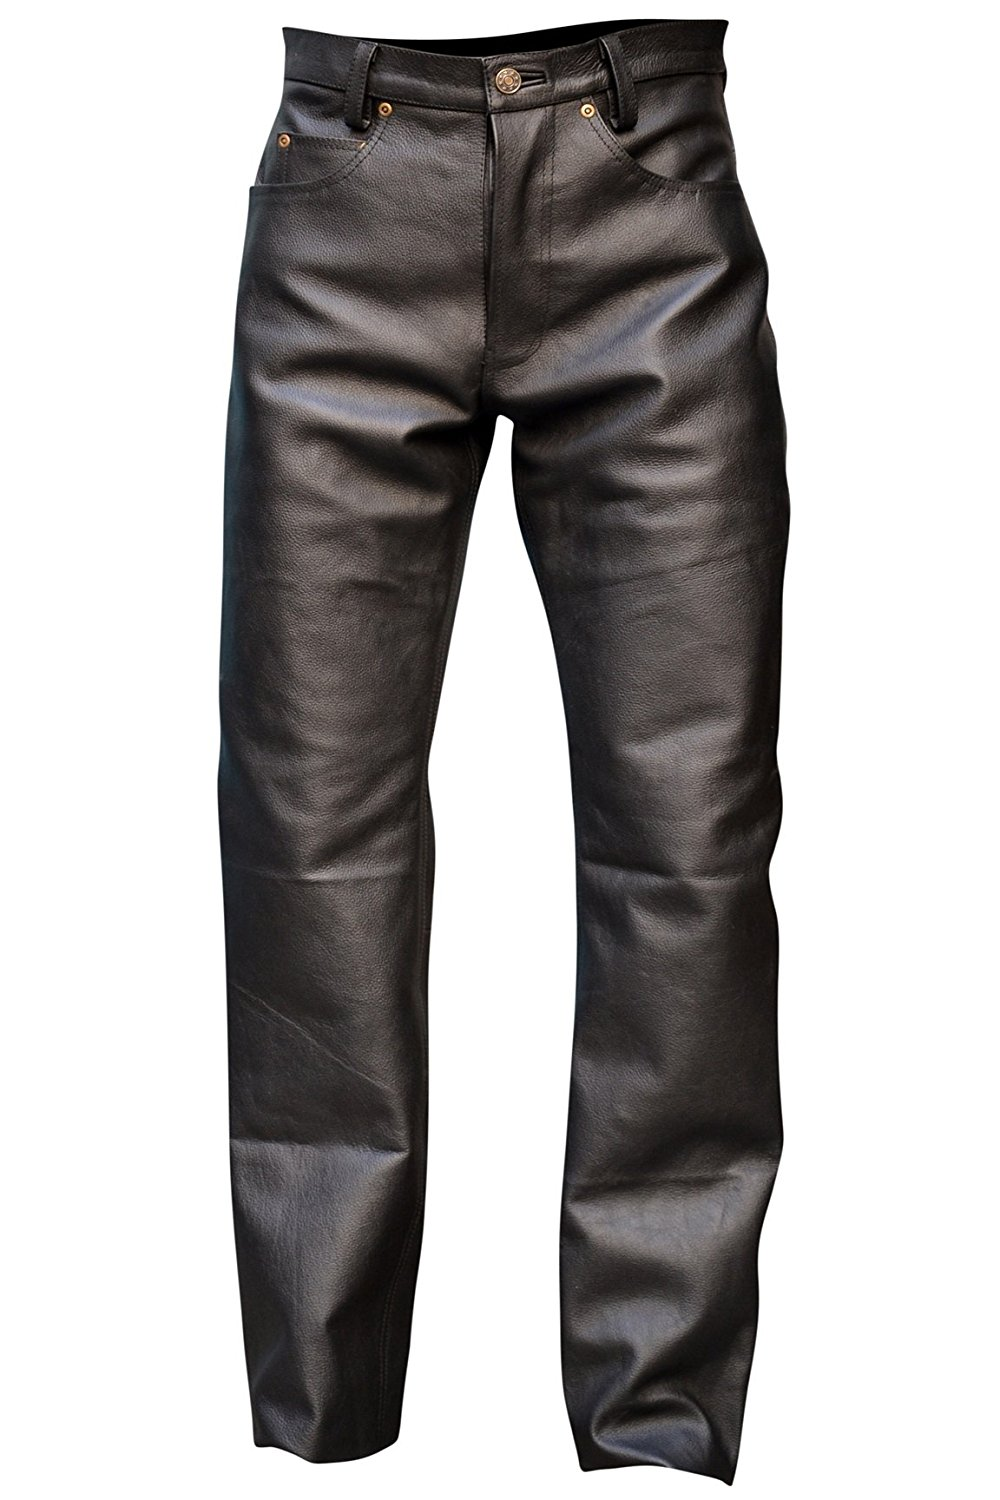 Popular leather sweatpants men of Good Quality and at Affordable Prices You can Buy on AliExpress. We believe in helping you find the product that is right for you. AliExpress carries wide variety of products, so you can find just what you're looking for – and maybe something you .